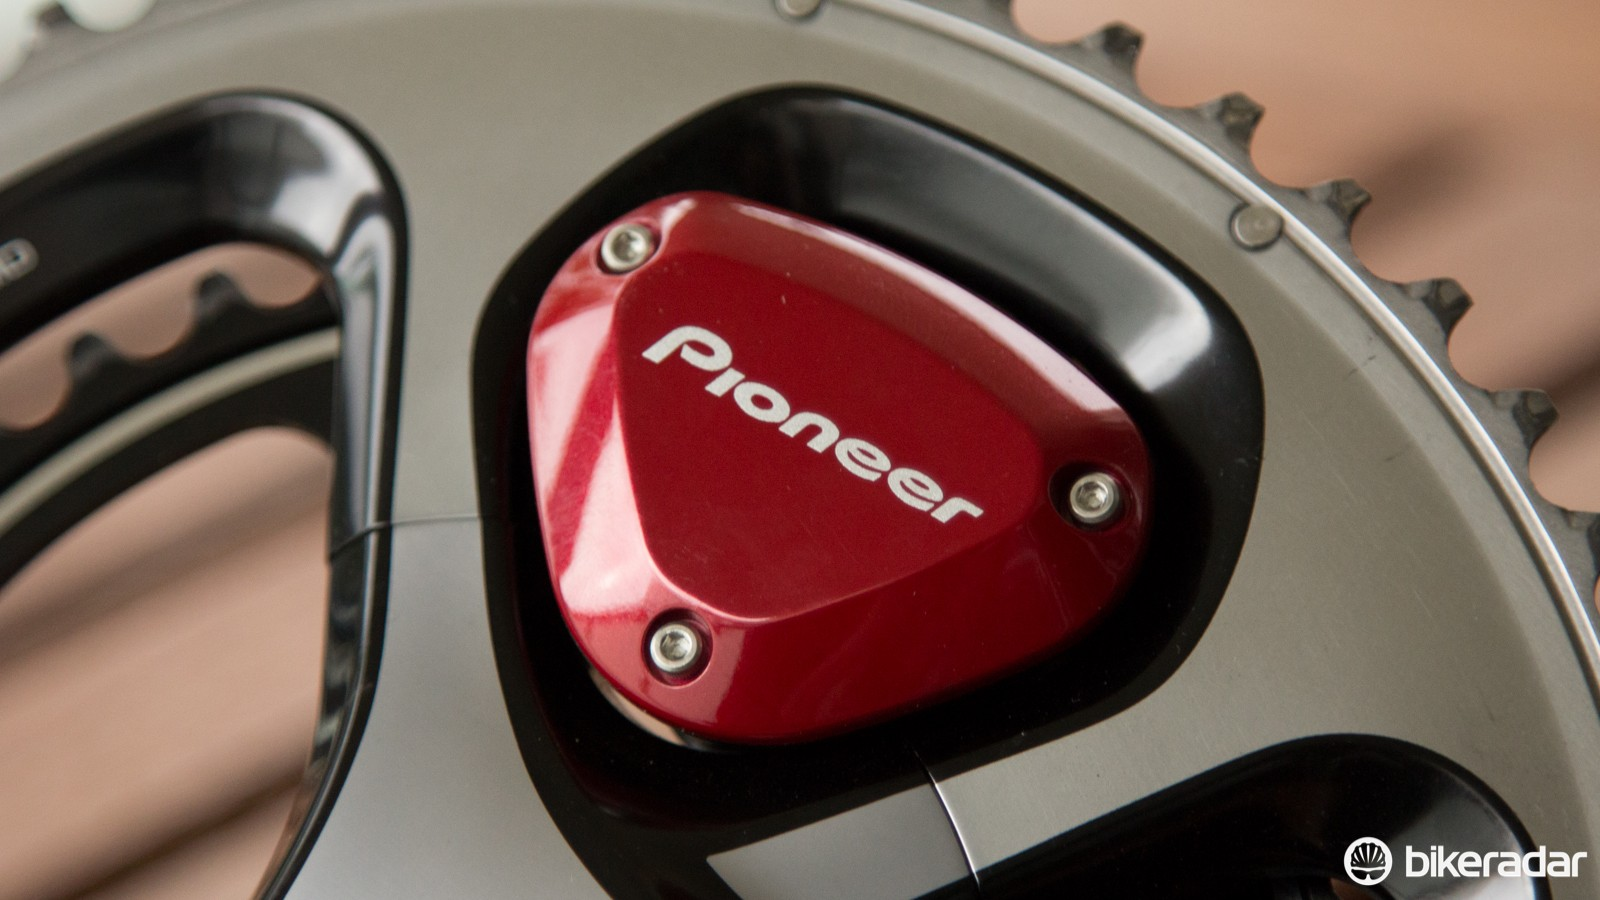 This red pod cap is easily replaceable, and Pioneer also includes a more subtle metallic grey option